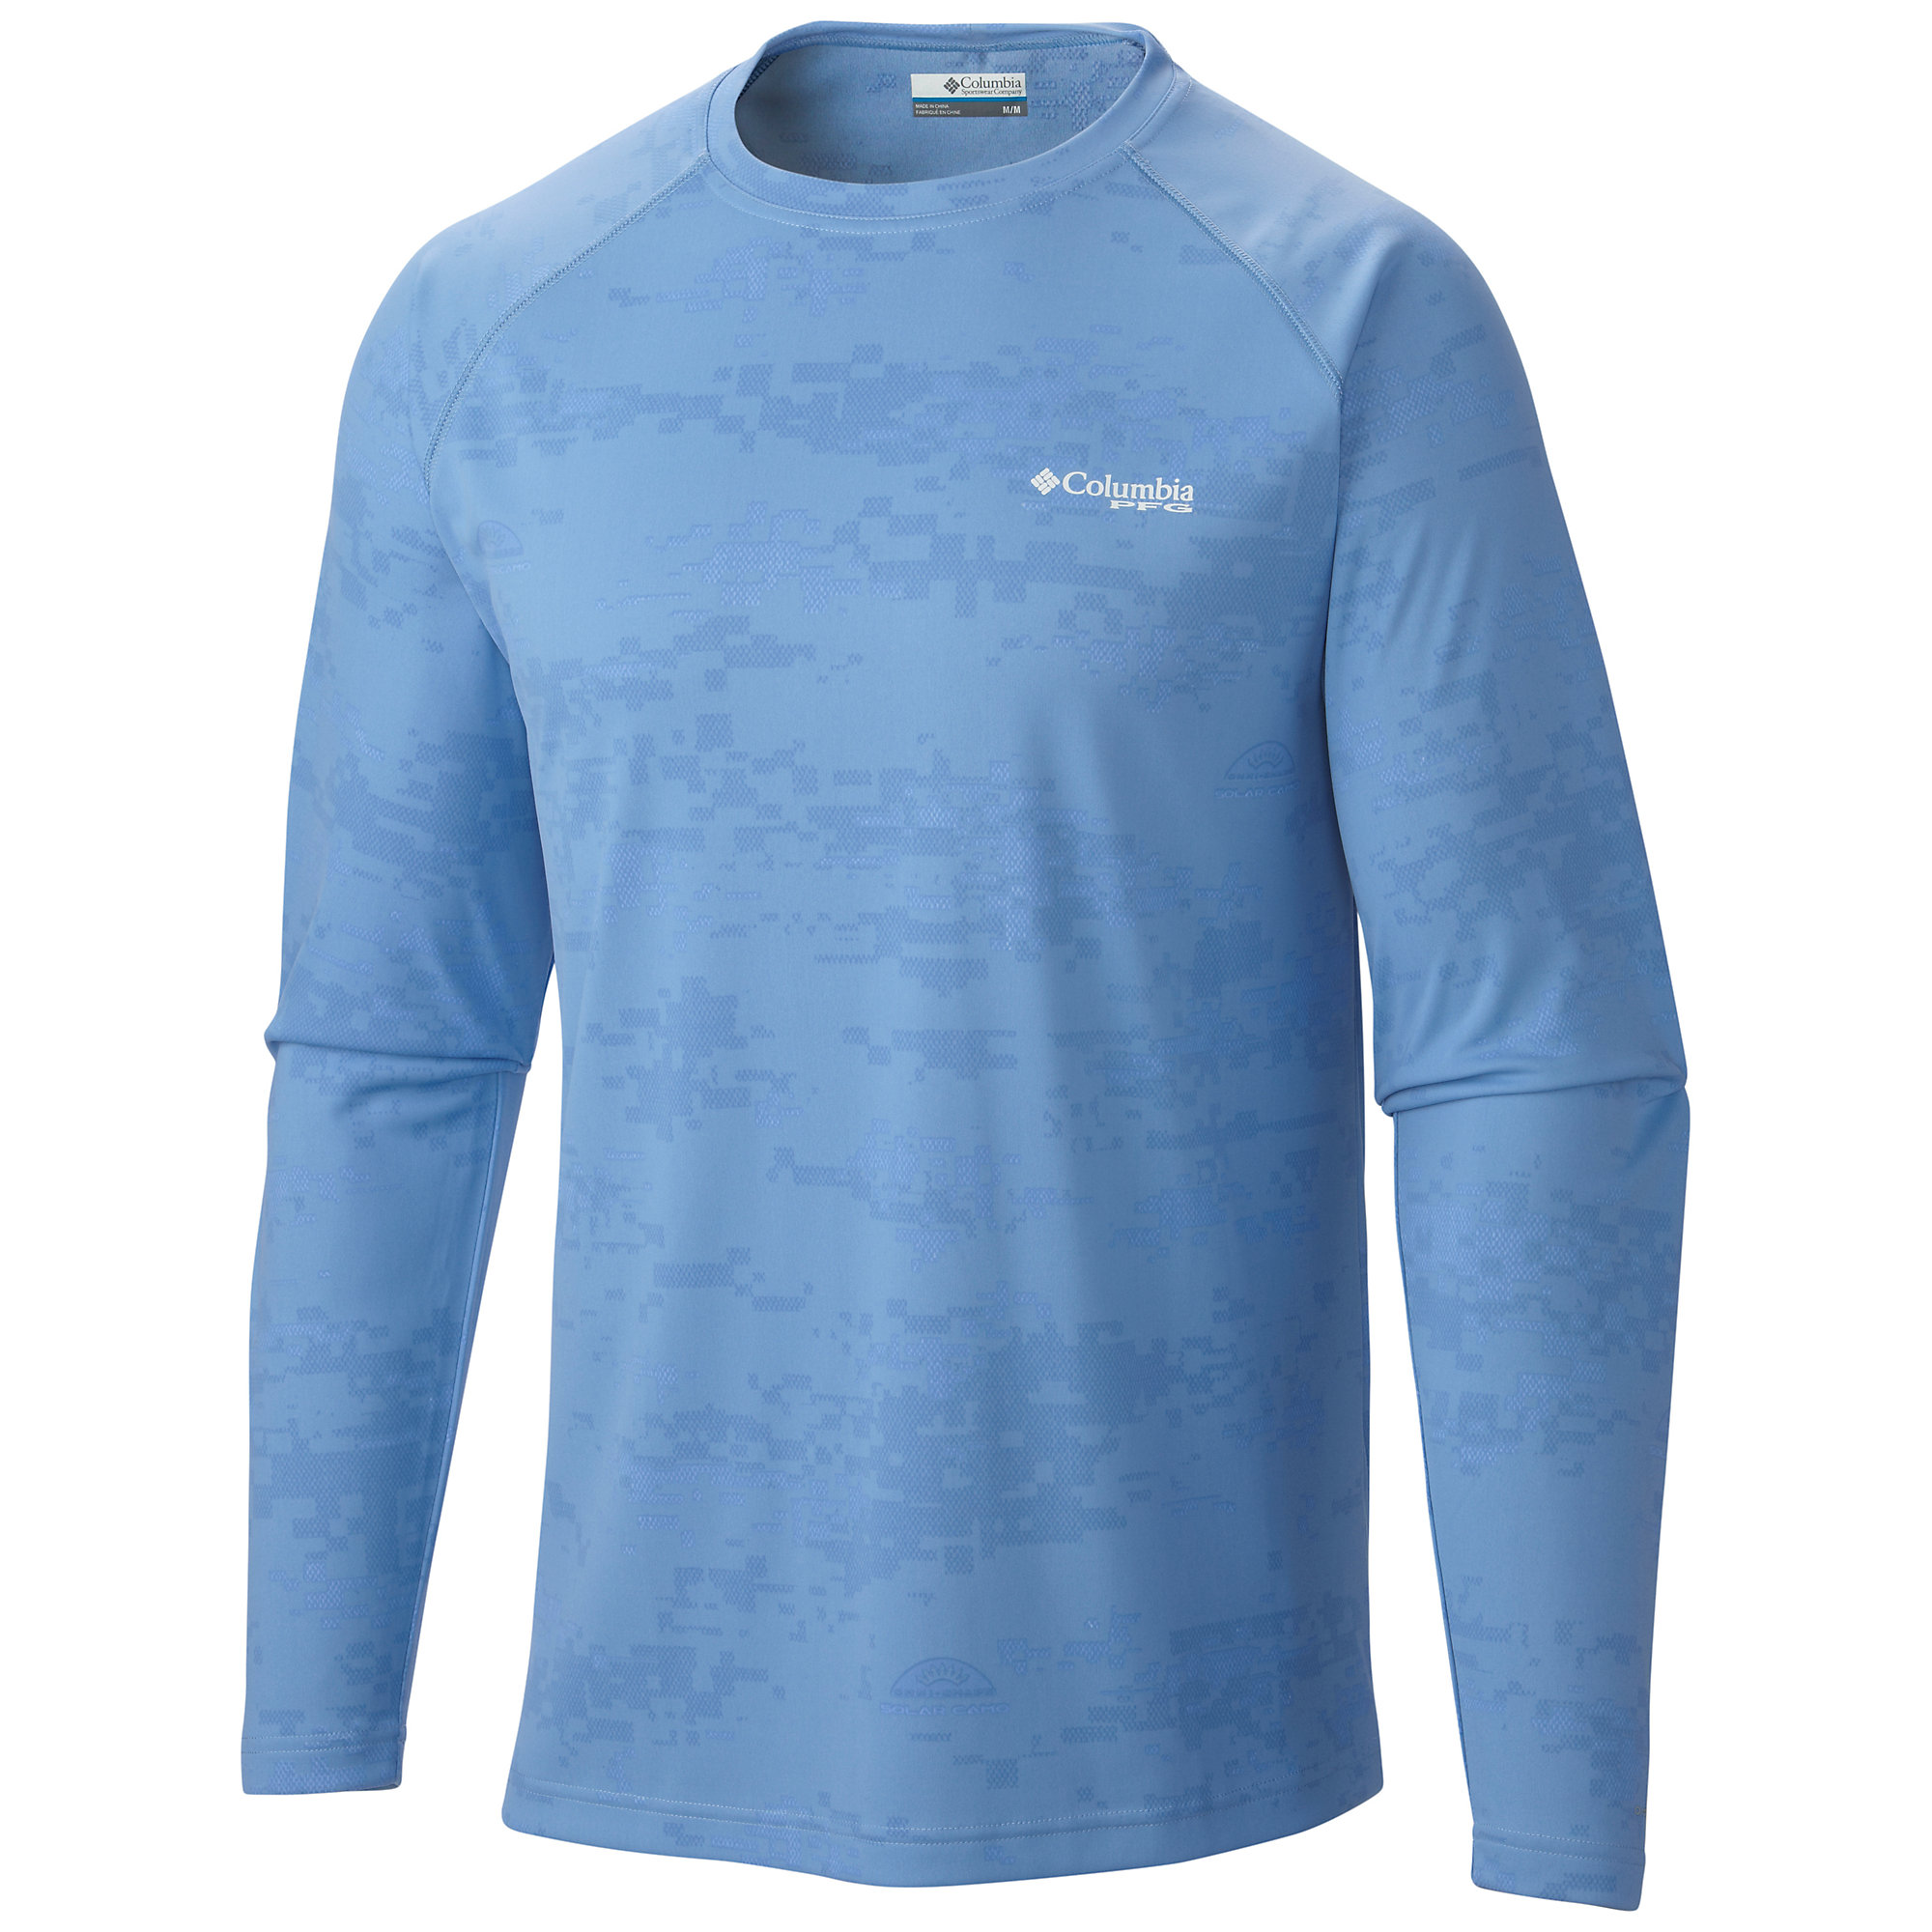 Columbia PFG Solar Camo Long Sleeve Knit